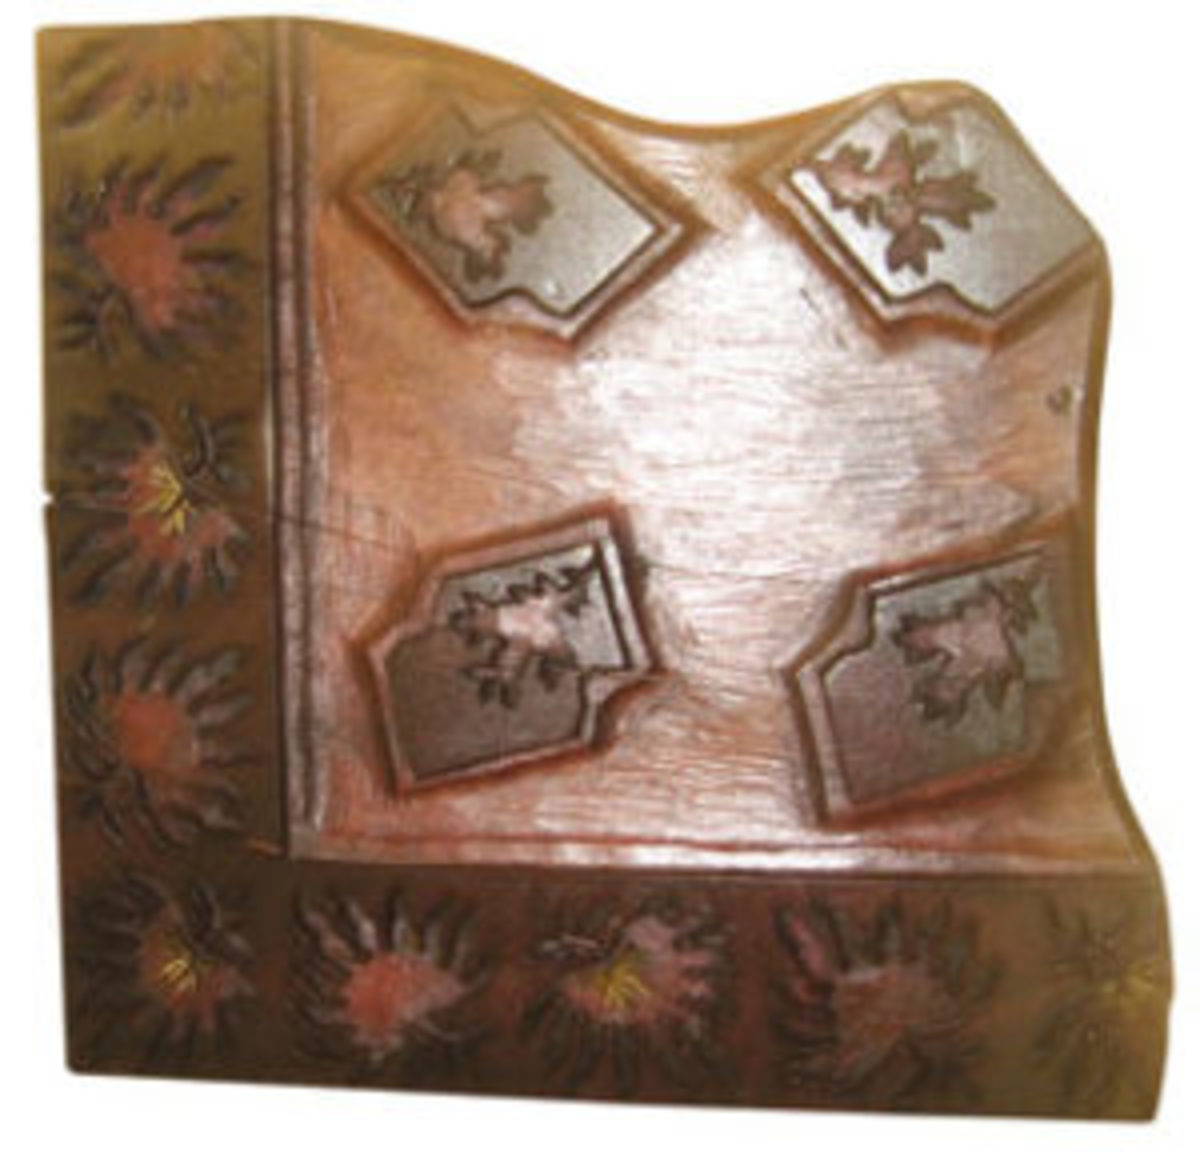 A large section of carved wood block used in hand printing. Notice the beautiful border. Blocks are constructed of hard woods, such as Rosewood; $140-$160.